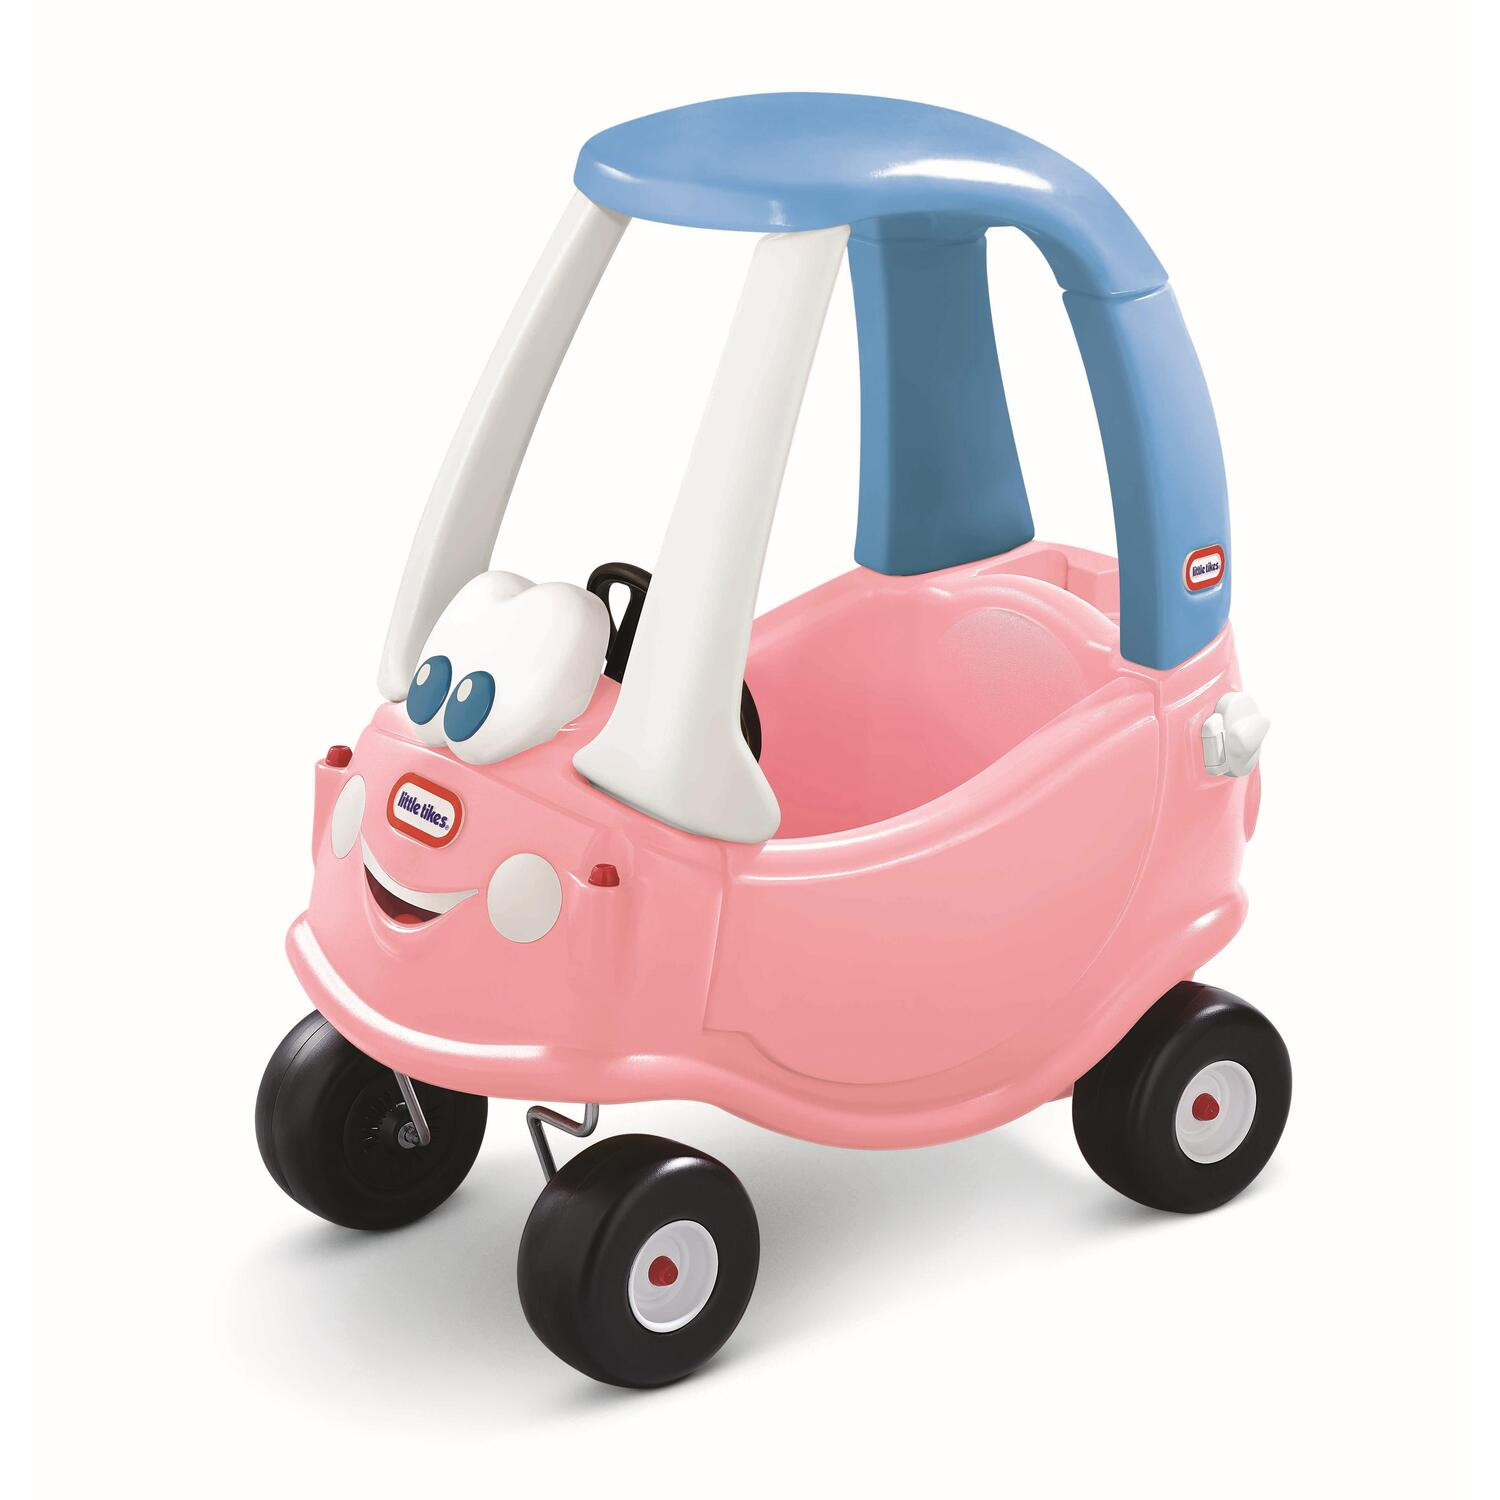 Top Little Tikes Toys : Little tikes princess cozy coupe th anniversary